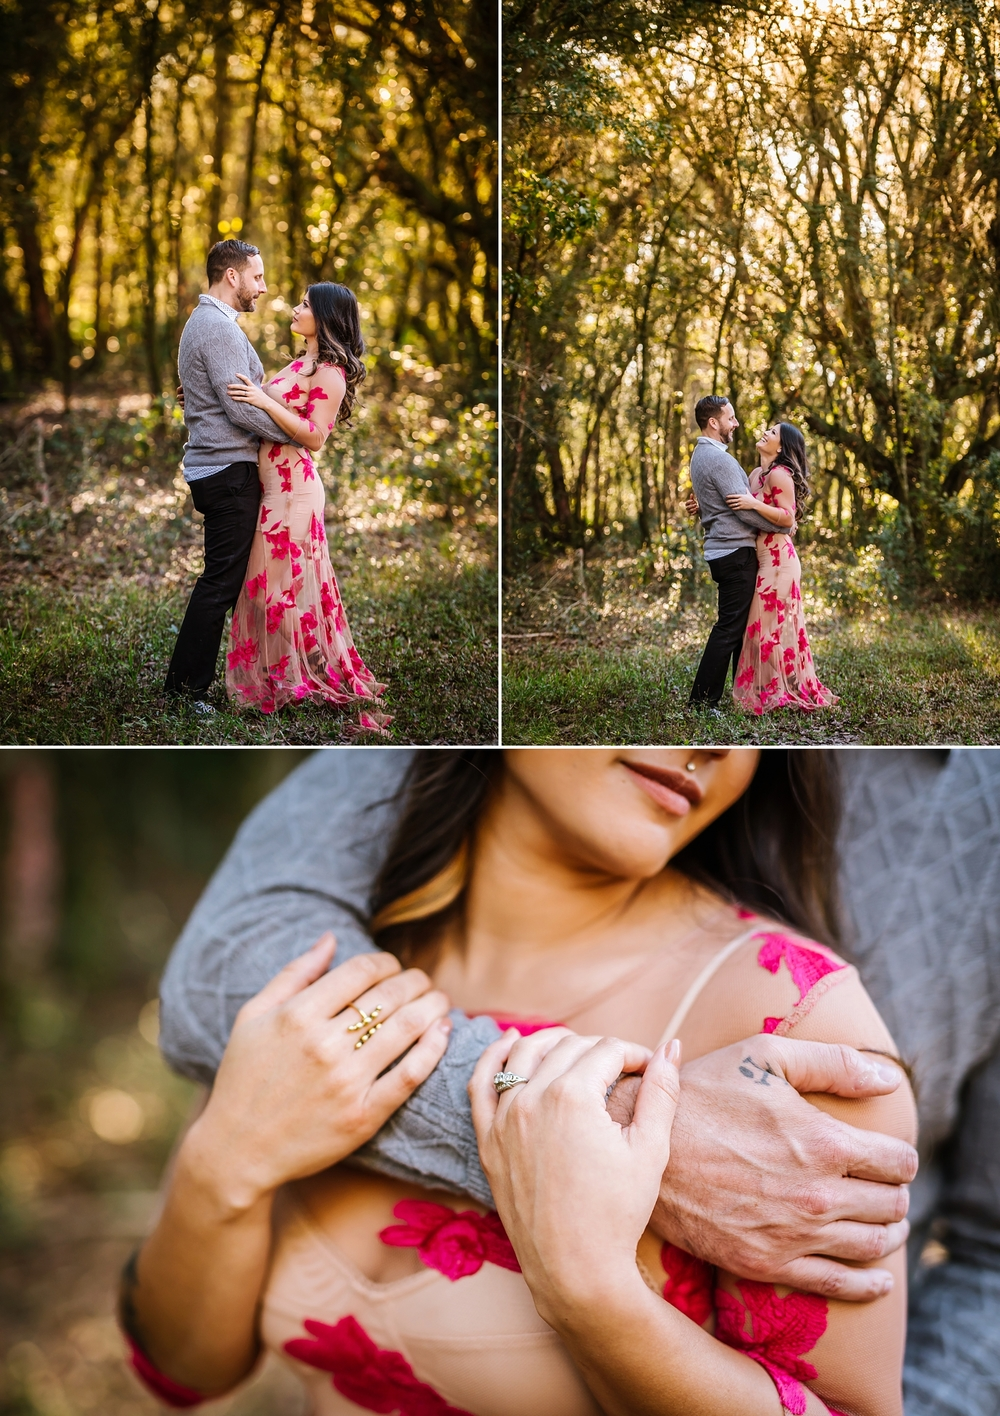 stylish-hip-engagement-session-tampa-ashlee-hamon_0008.jpg